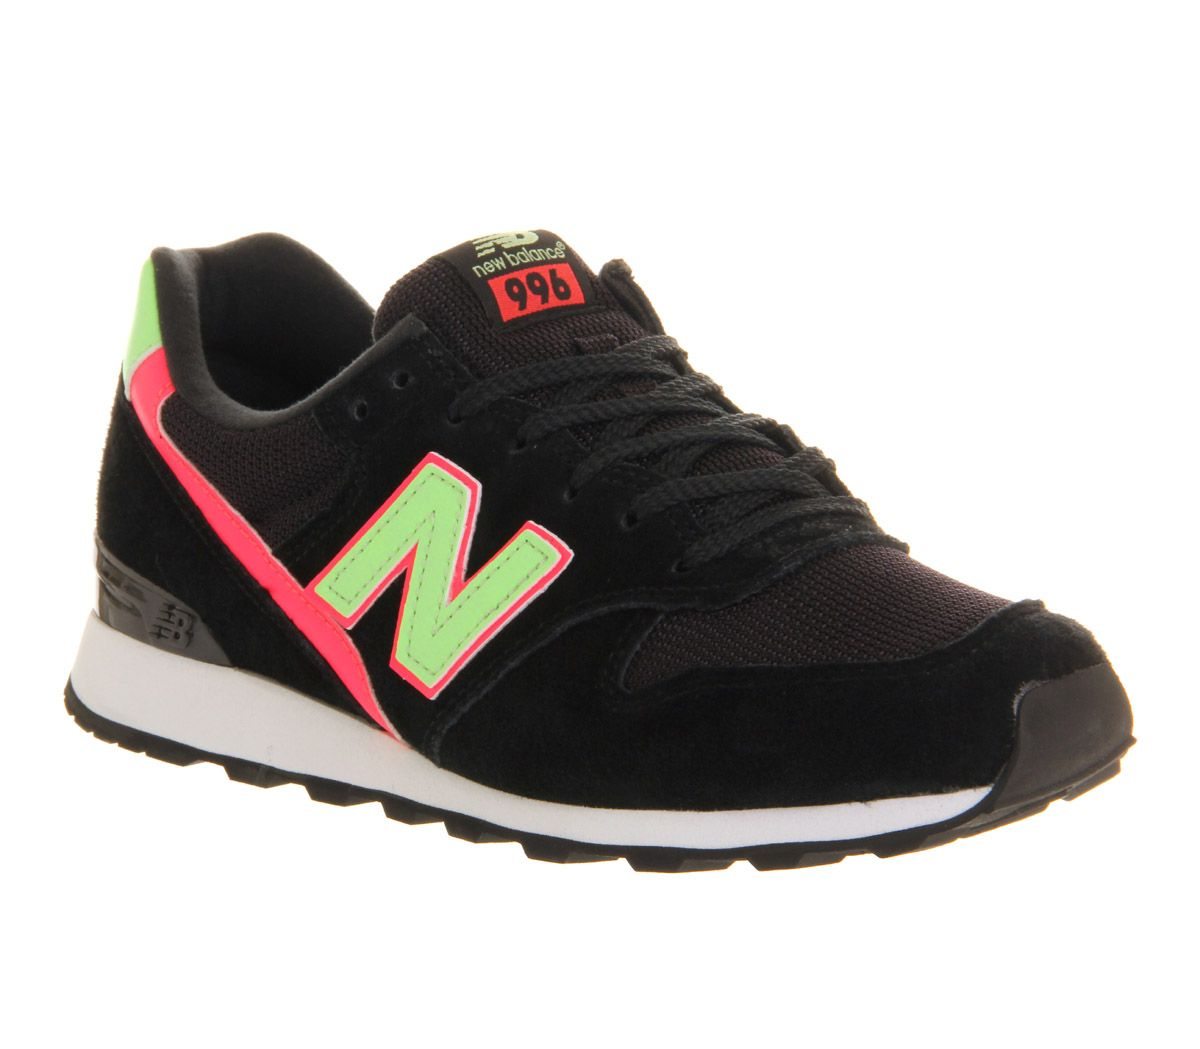 separation shoes 5b500 15957 New Balance Wr996 Black Green Pink Exclusive - Hers trainers ...